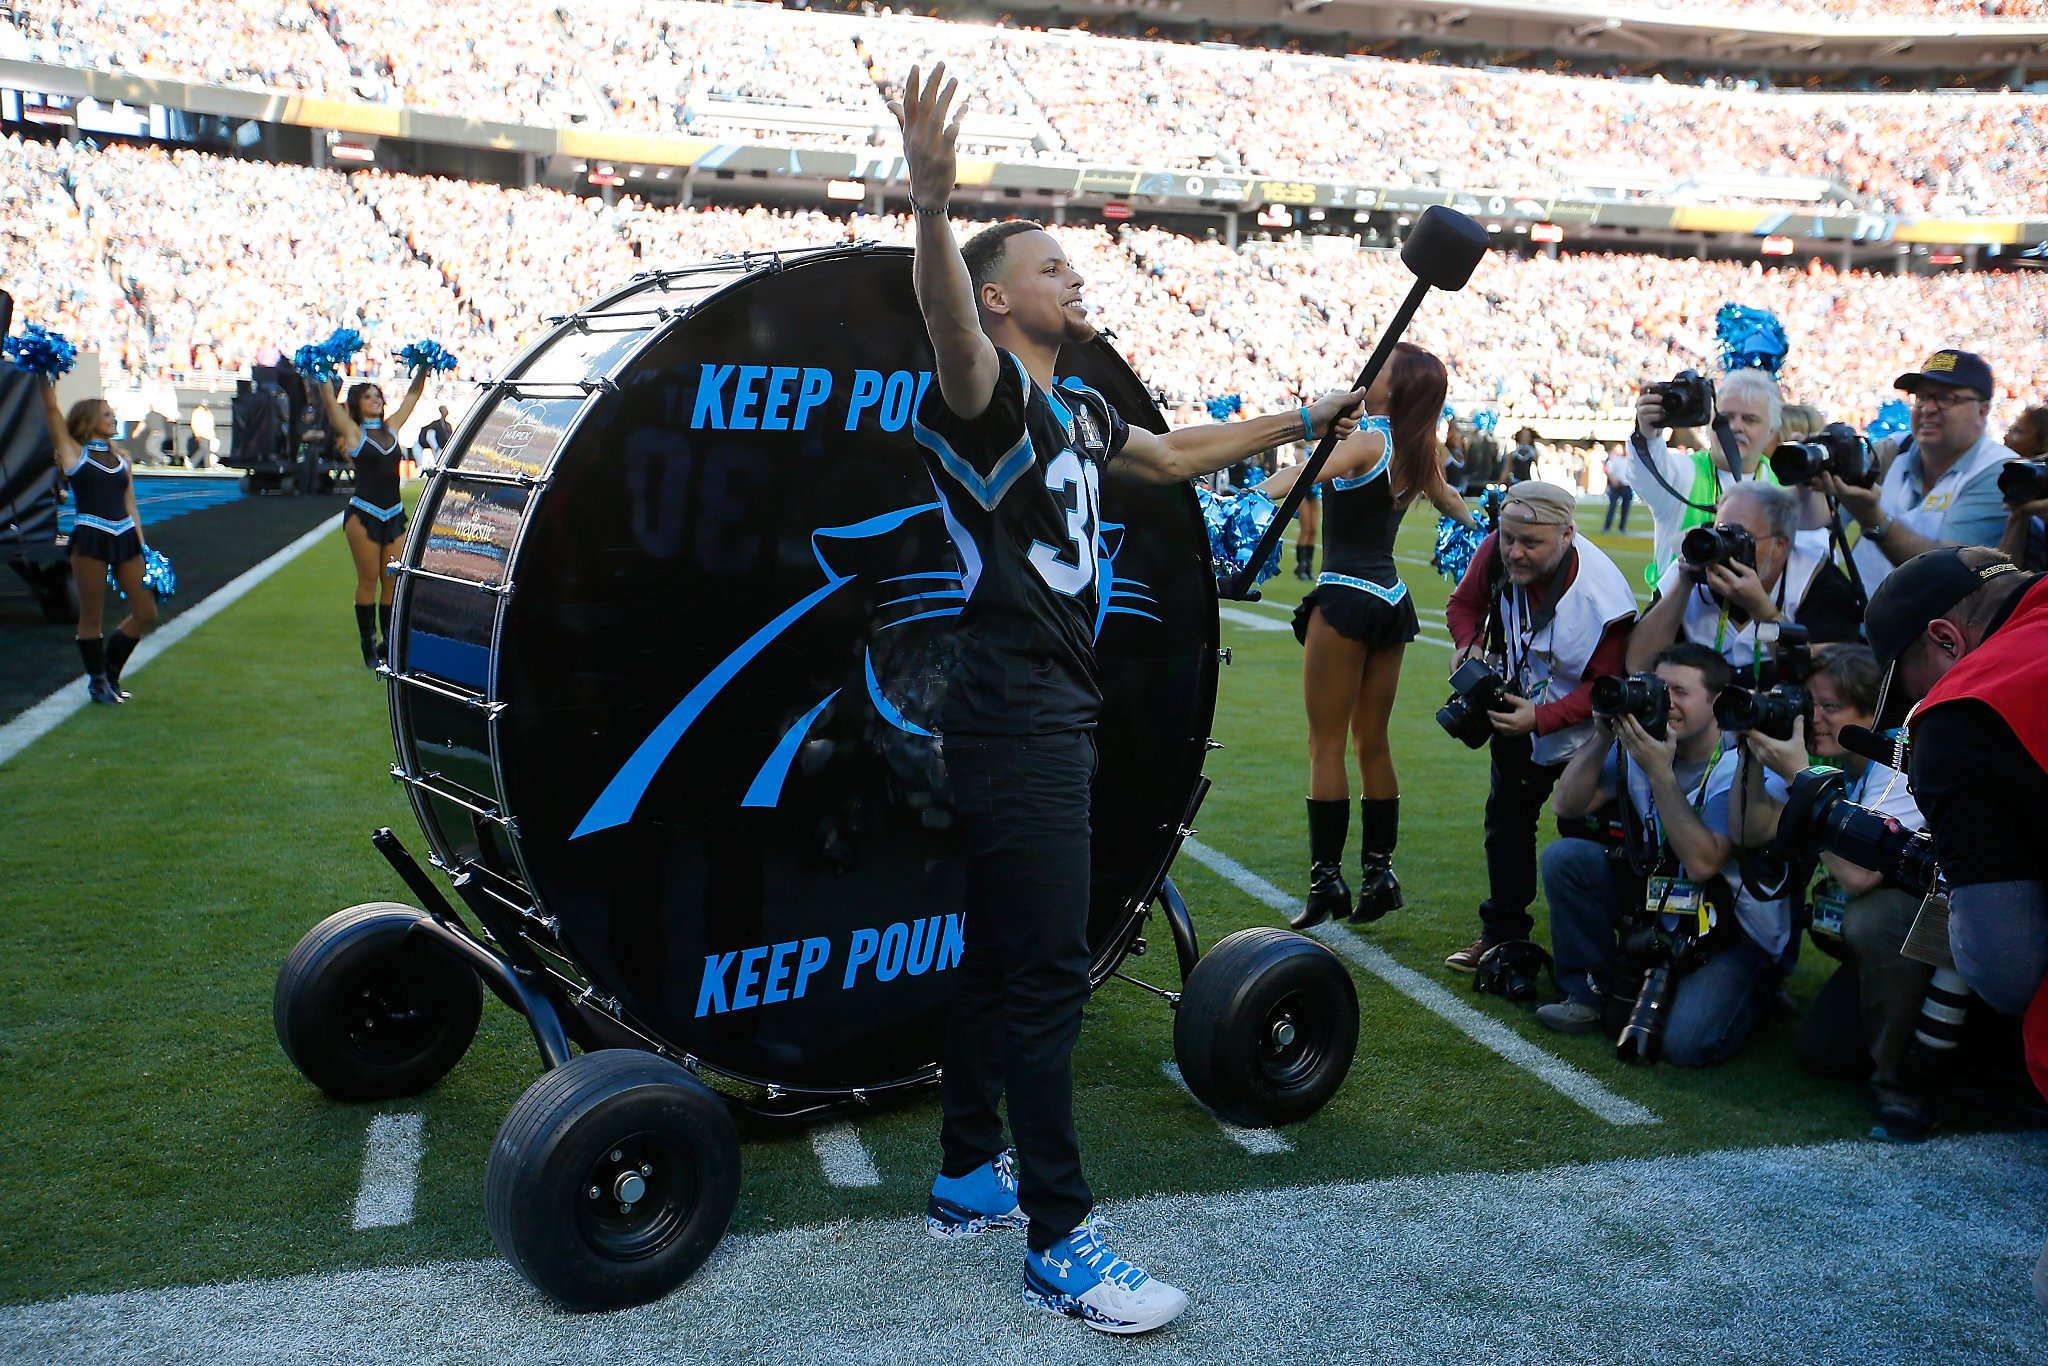 Reputable Stephen Curry Tweets Support To Charlotte Amid Protests Sfgate Steph Curry House Tour Steph Curry House Charlotte curbed Steph Curry House